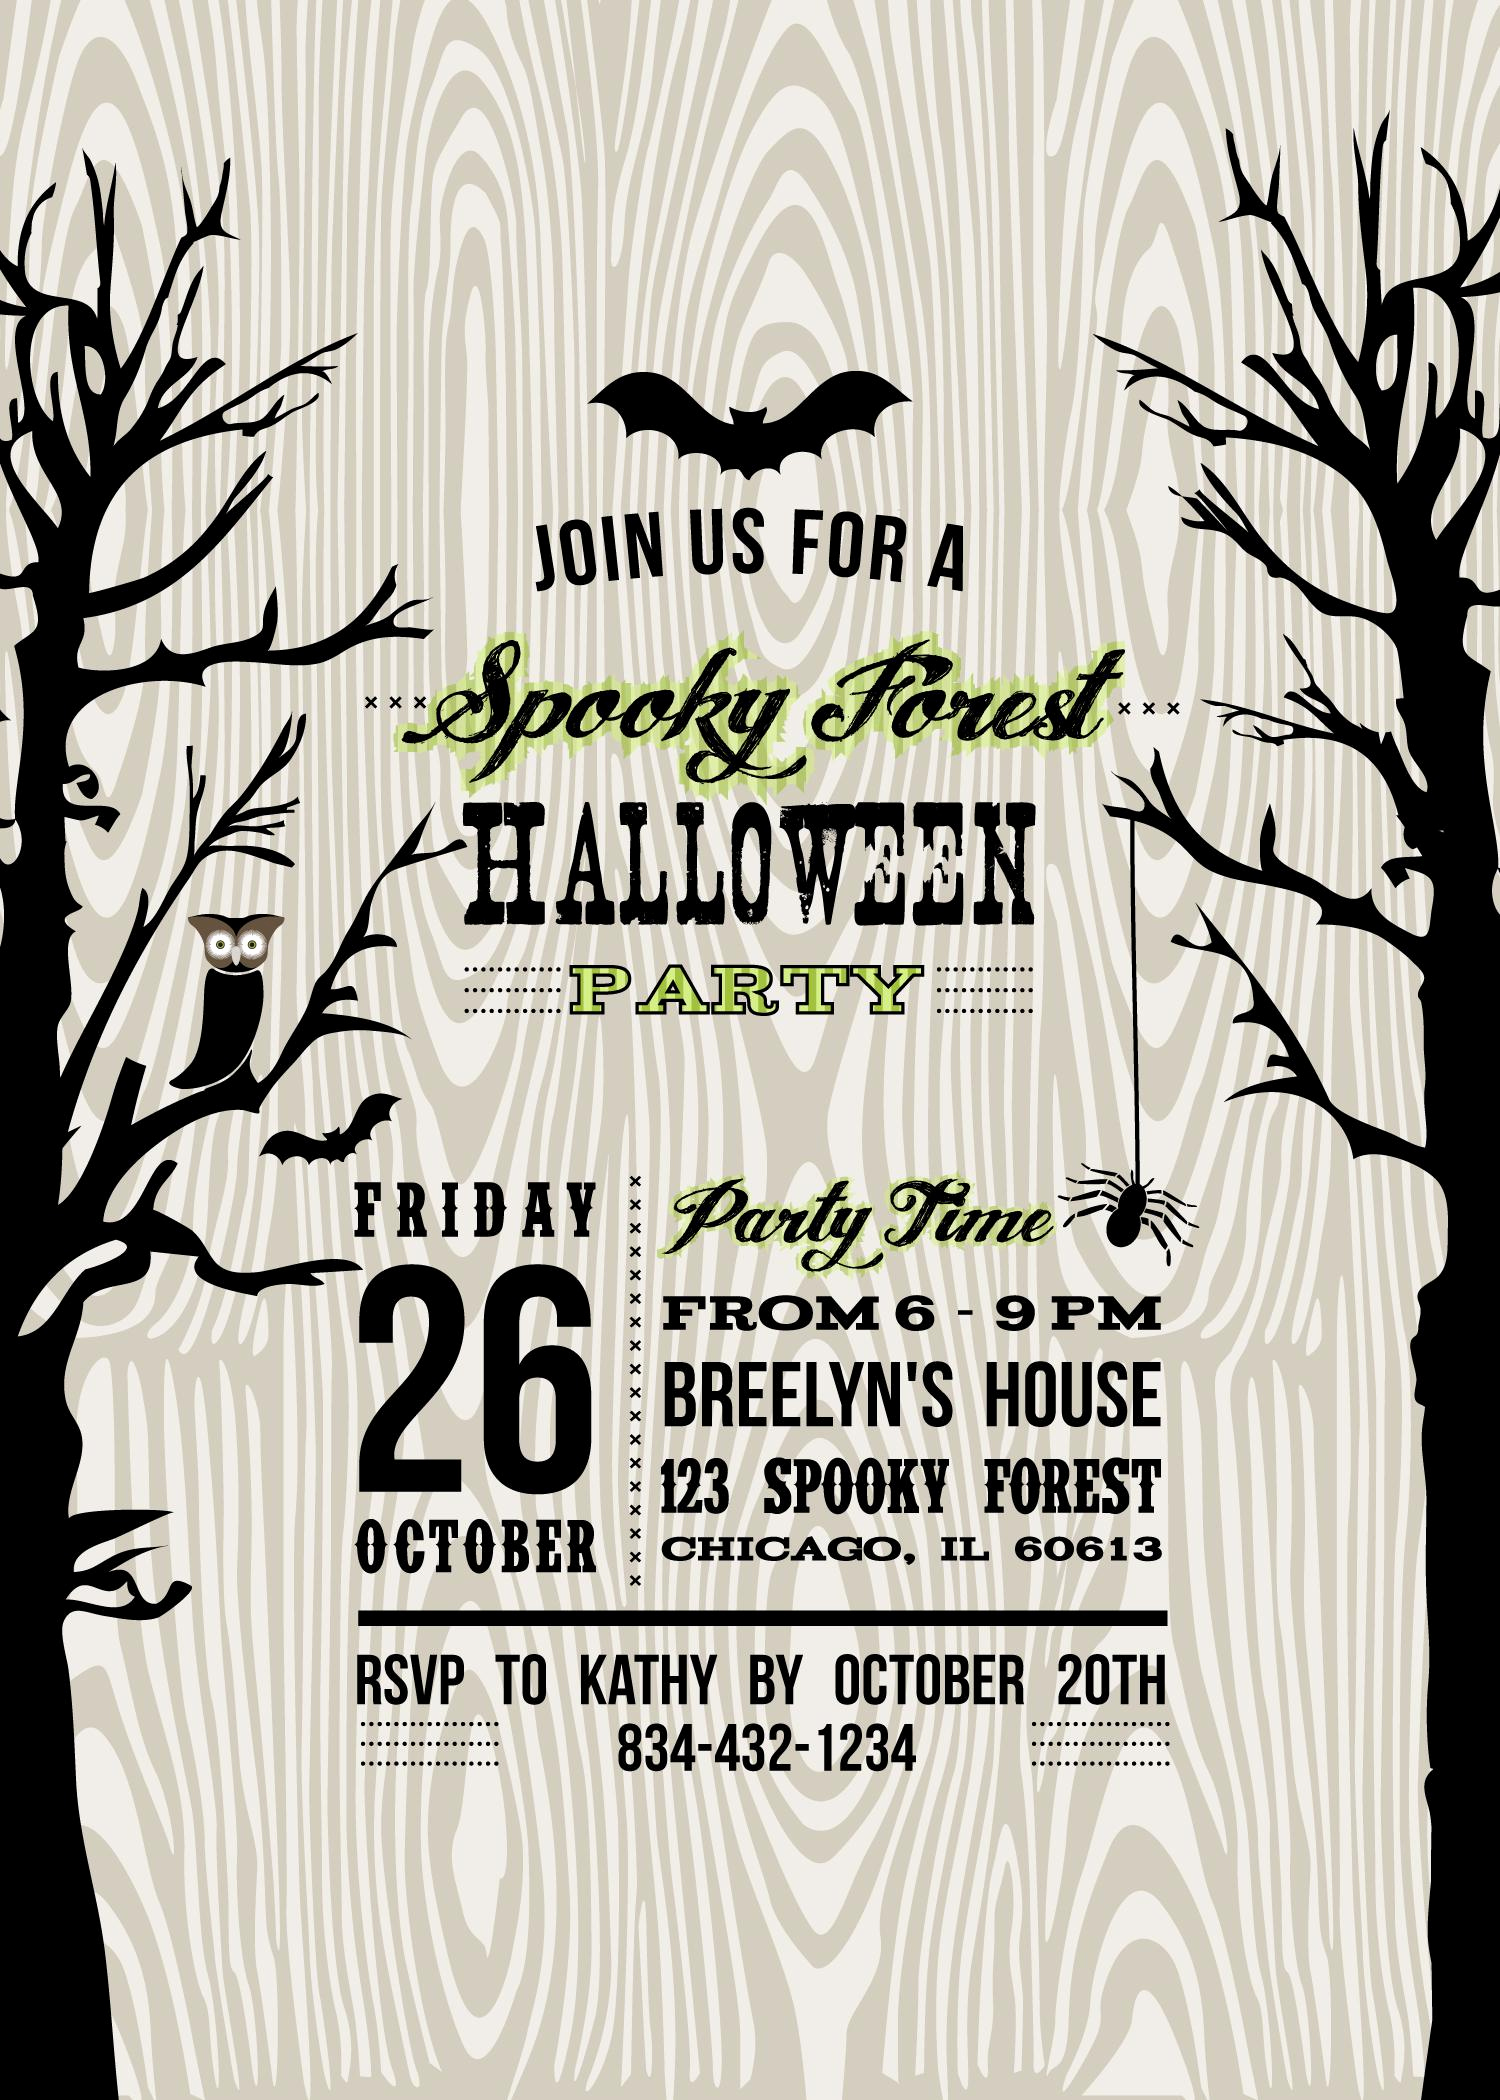 Halloween Party Invitation Templates Beautiful Halloween Invitation Wording byob – Festival Collections